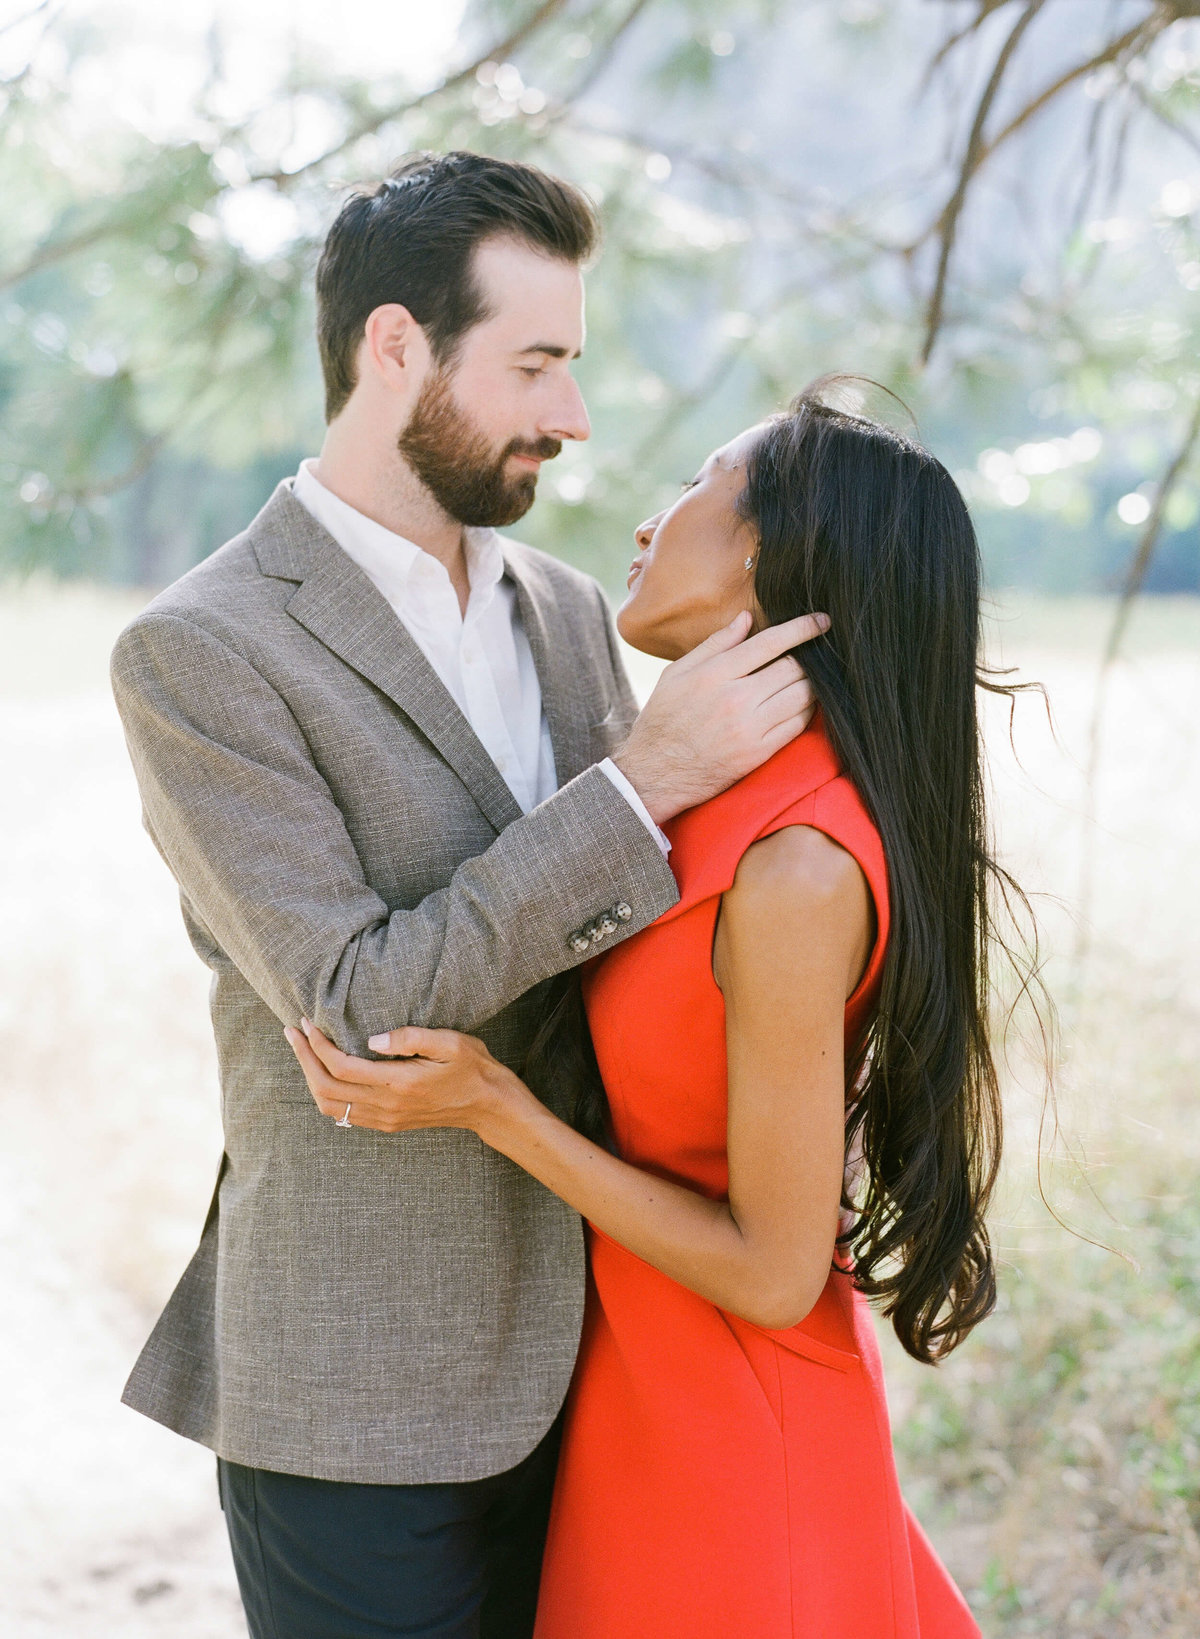 53-KTMerry-engagement-photography-romantic-couple